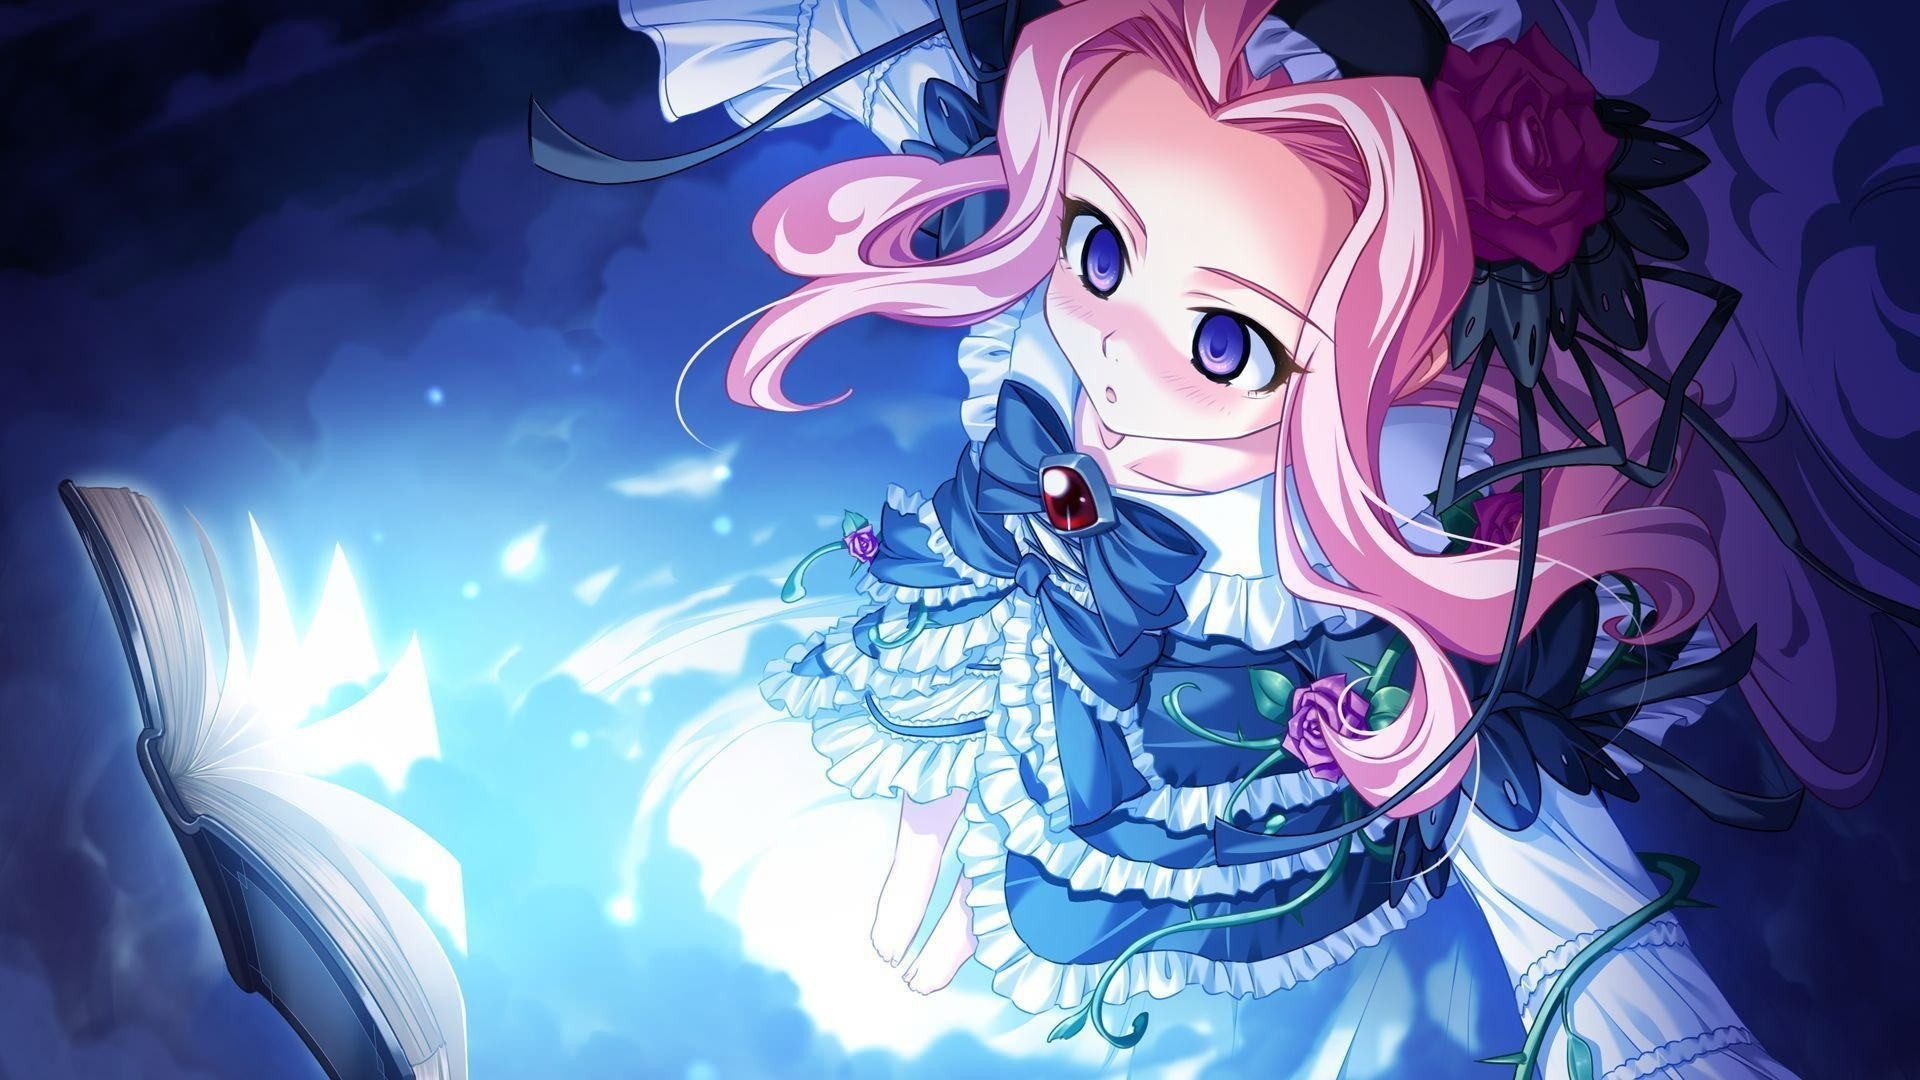 HD Anime Wallpaper Collection | Places to Visit | Pinterest | Hd anime  wallpapers and Wallpaper